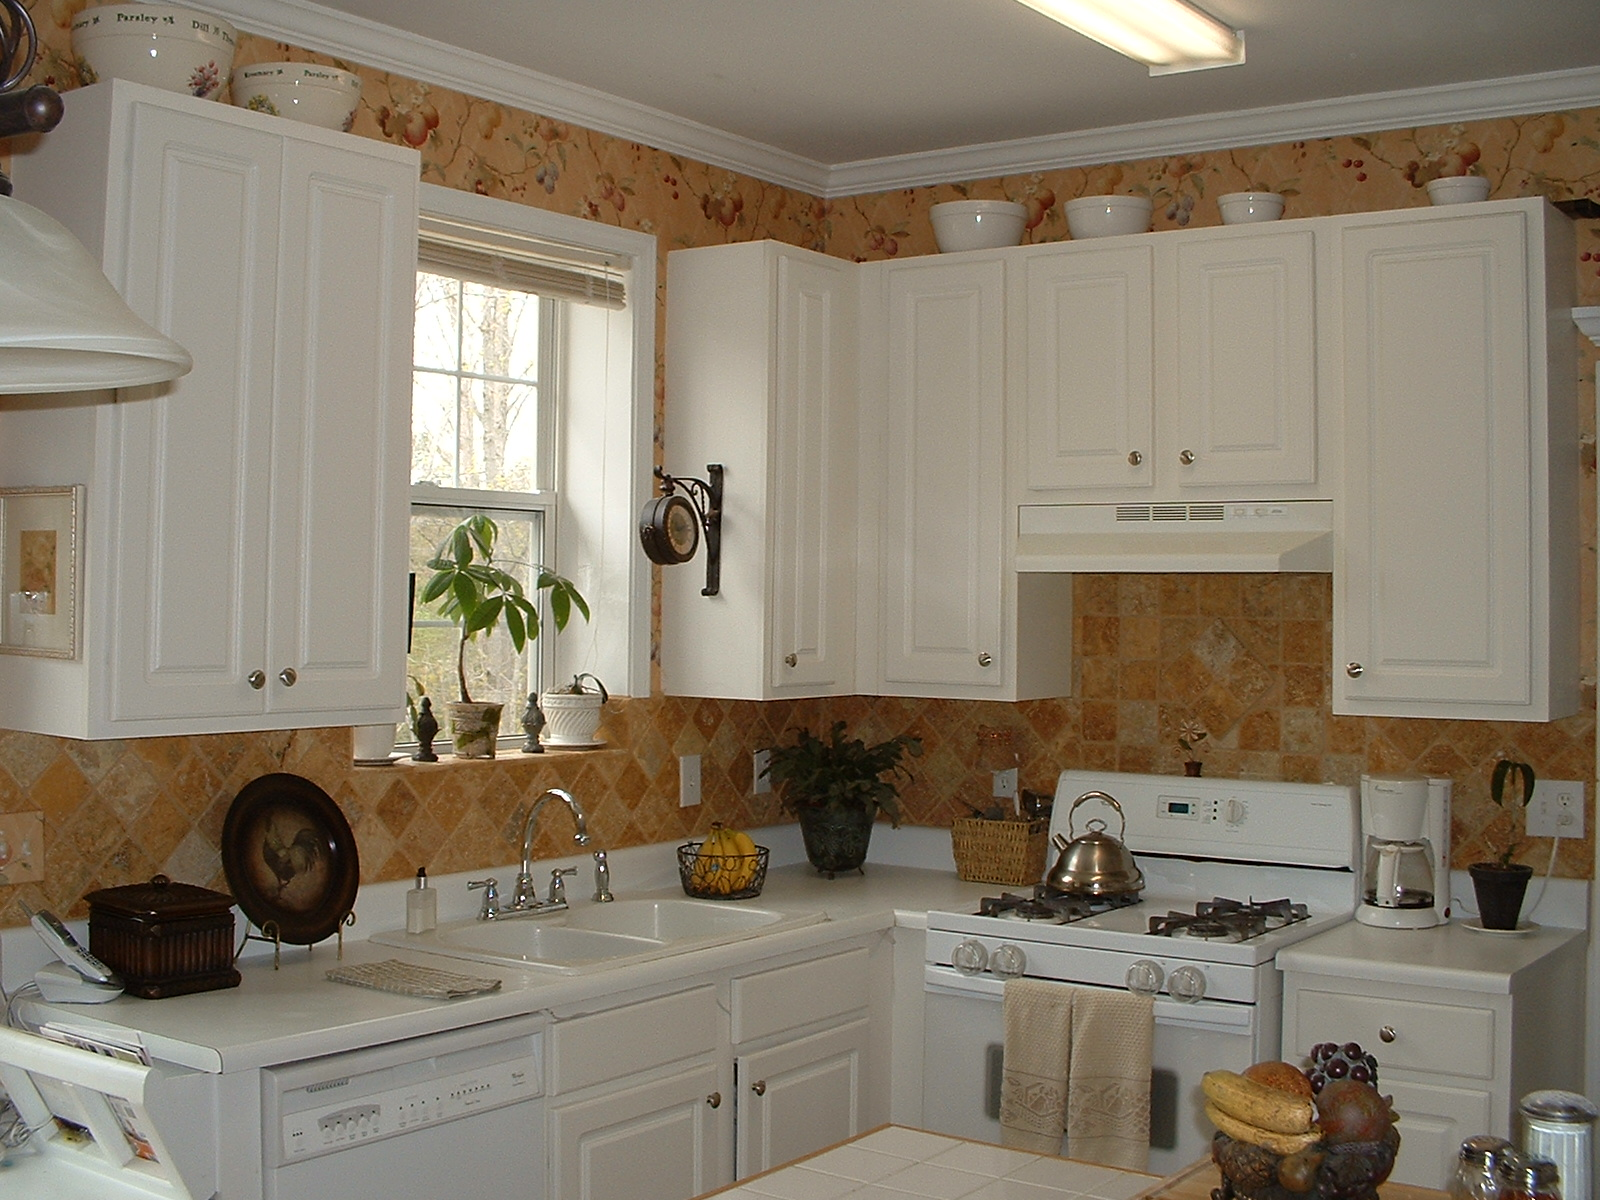 Ideas For Slanted Ceilings In Kitchen